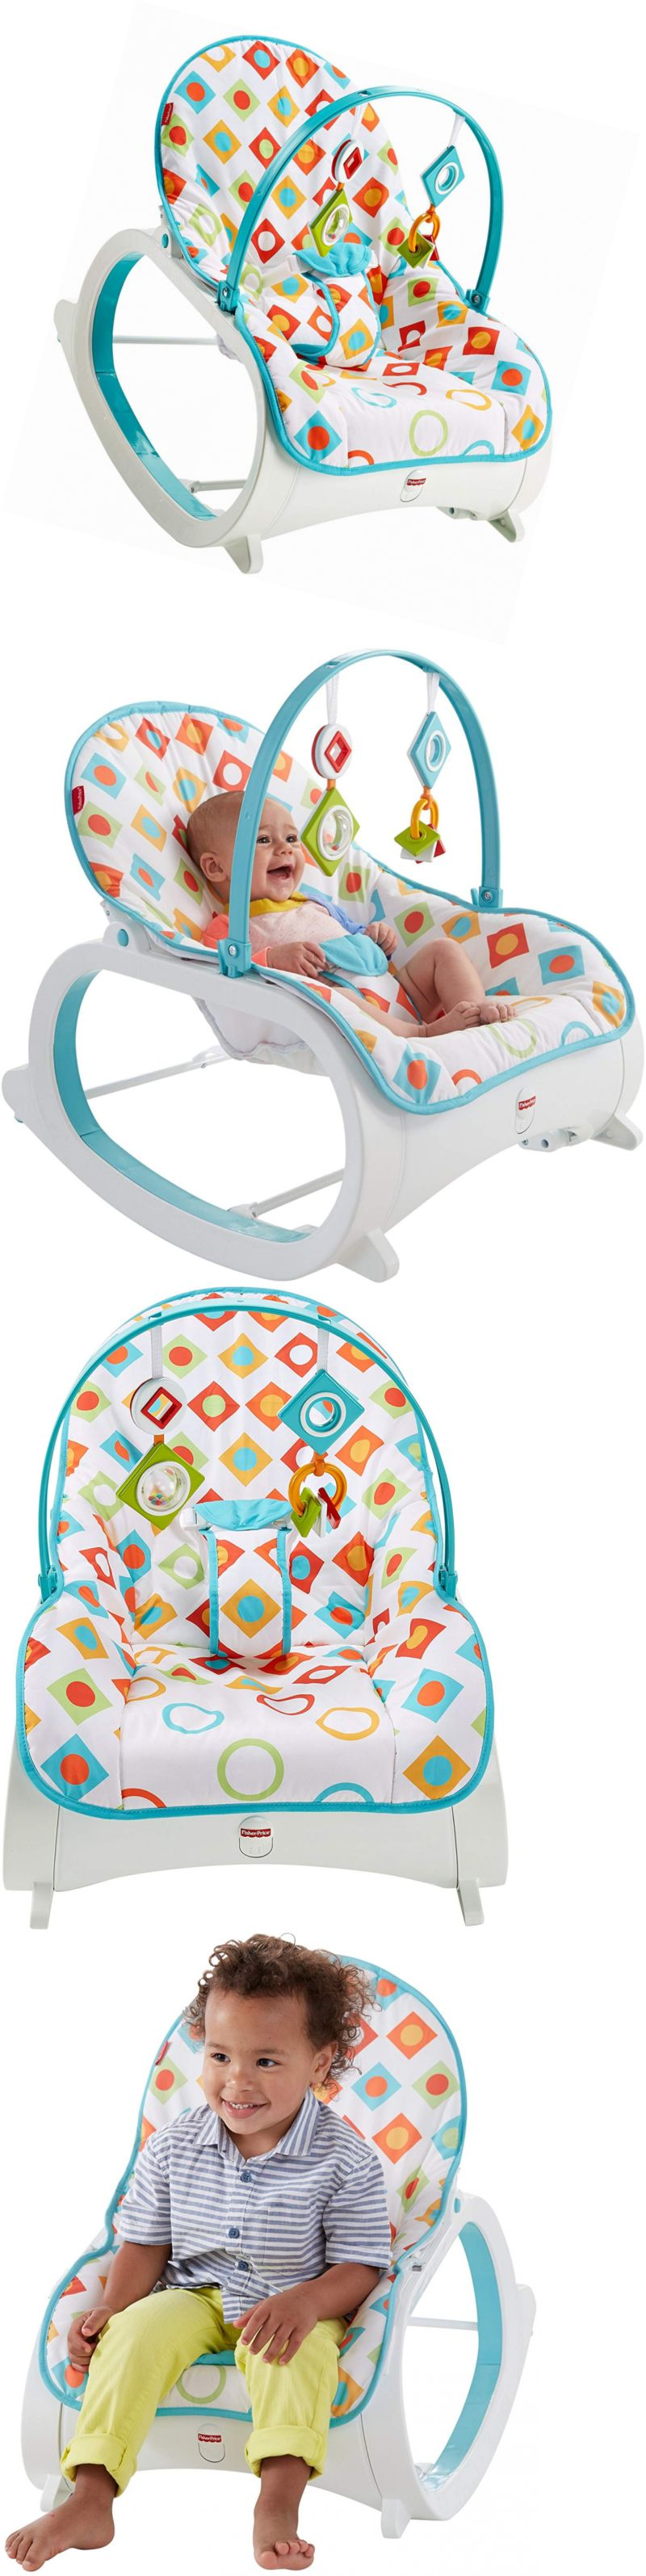 1be0d3f8a Baby Jumping Exercisers 117032  Fisher-Price Infant-To-Toddler ...